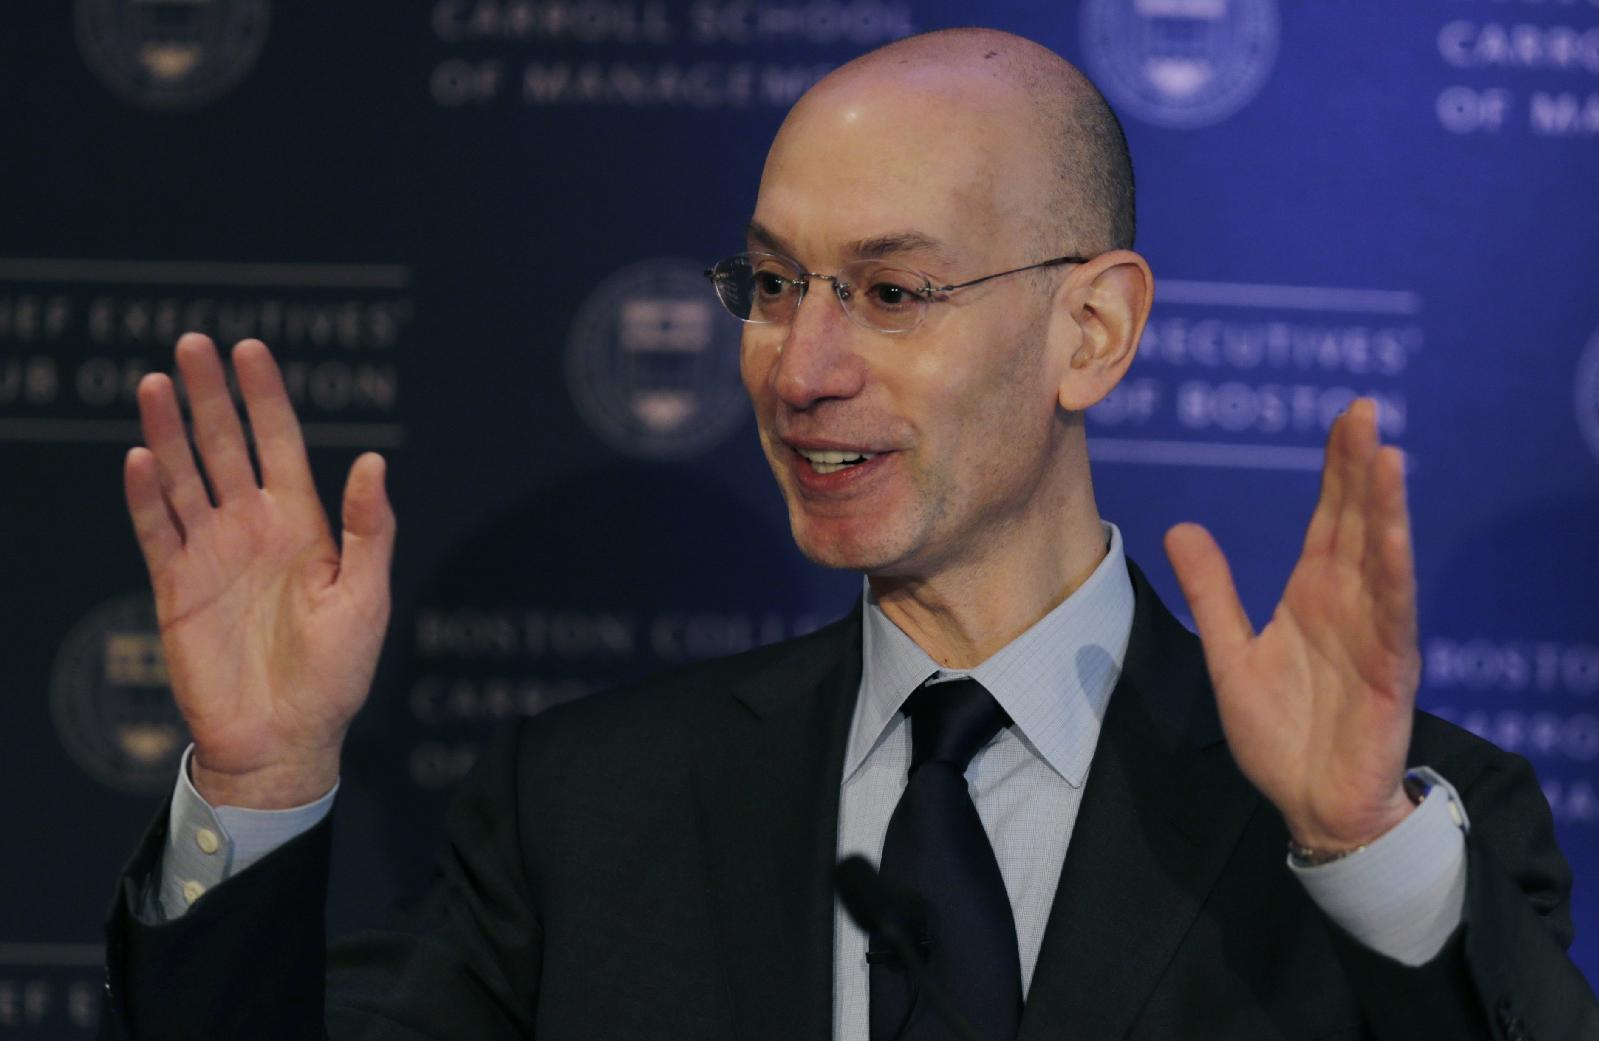 NBA commissioner Adam Silver gestures during an address, Wednesday, March 12, 2014, in Boston. Silver commented on some teams with losing records